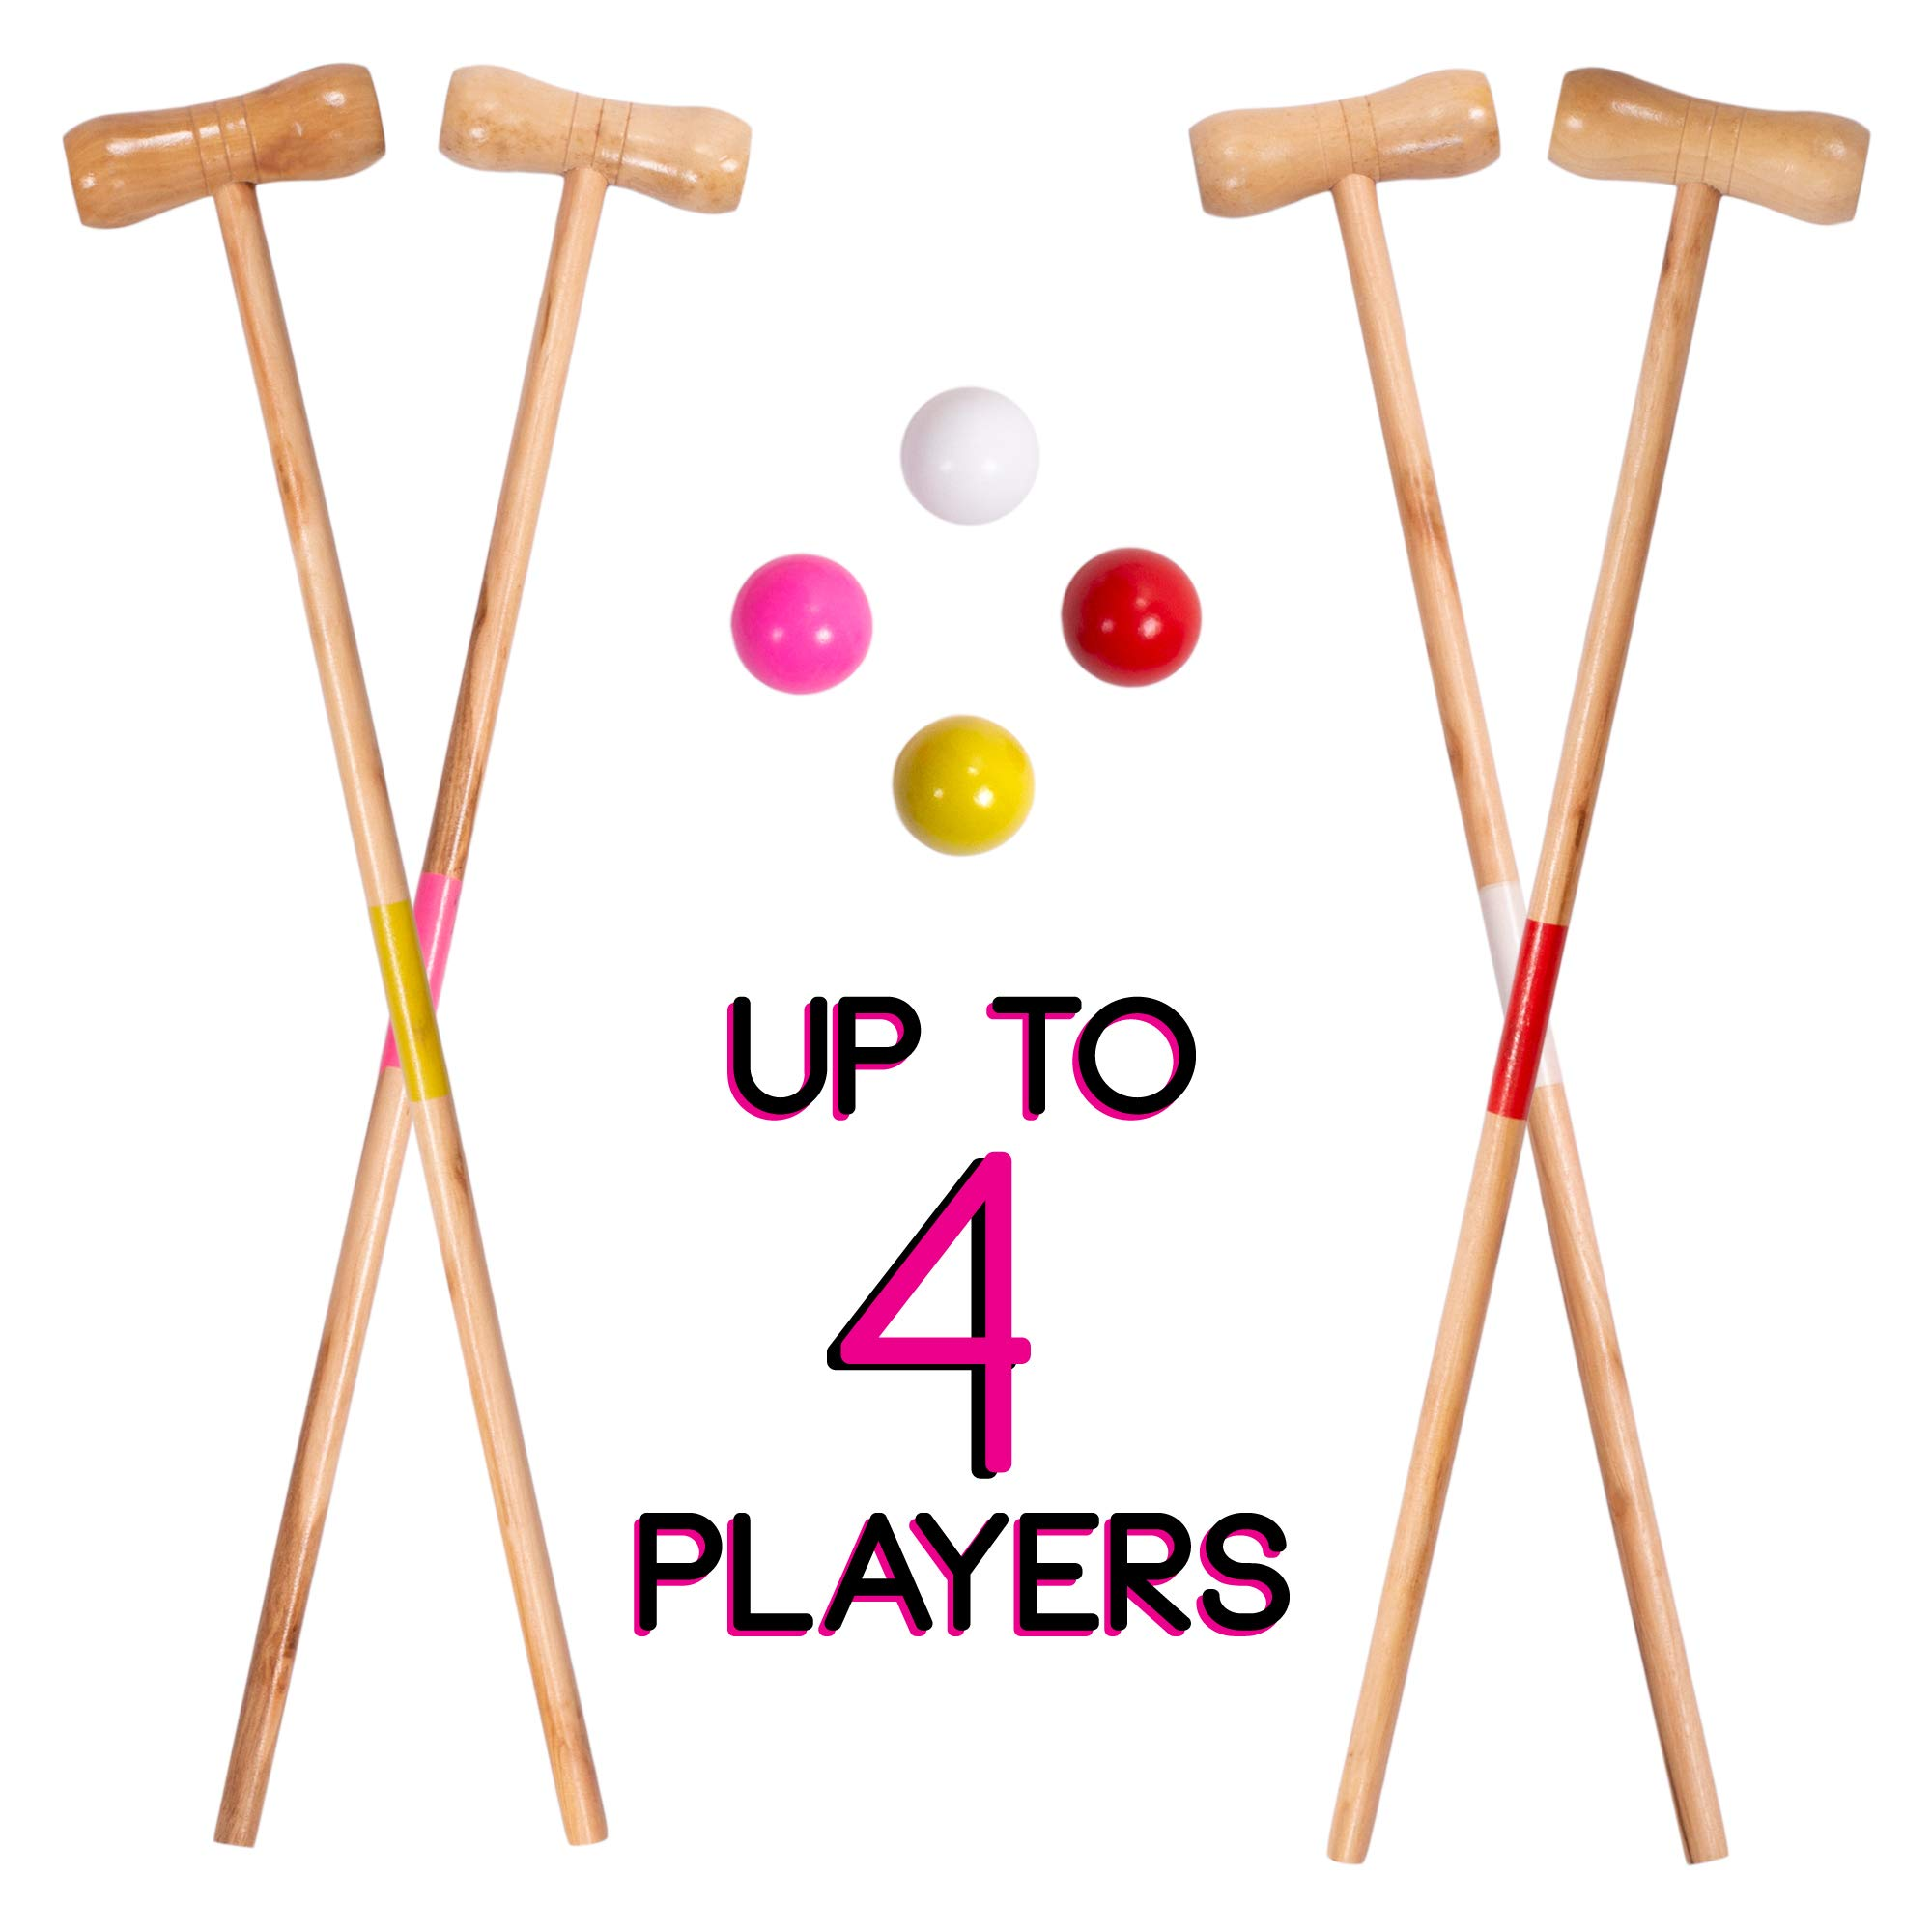 Kids Croquet Set for 4-Players | Classic Outdoor Lawn Game for Children | Great for Birthday Parties, Picnics, BBQs, and More | Comes with Mallets, Balls, Wickets, and a Carrying Bag for Portability by Crown Sporting Goods (Image #4)